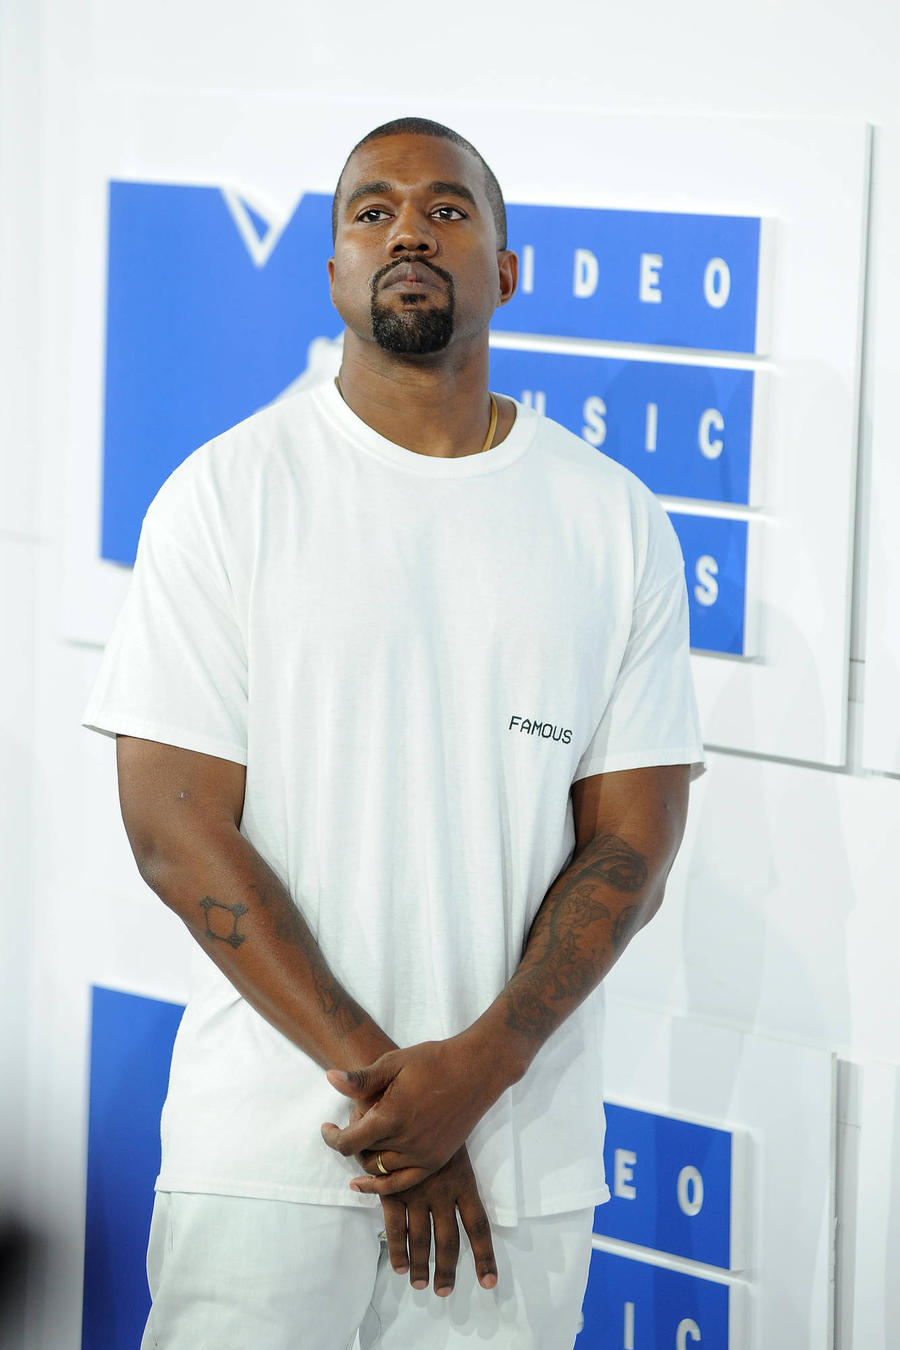 Kanye West Deletes All Twitter Posts About Donald Trump